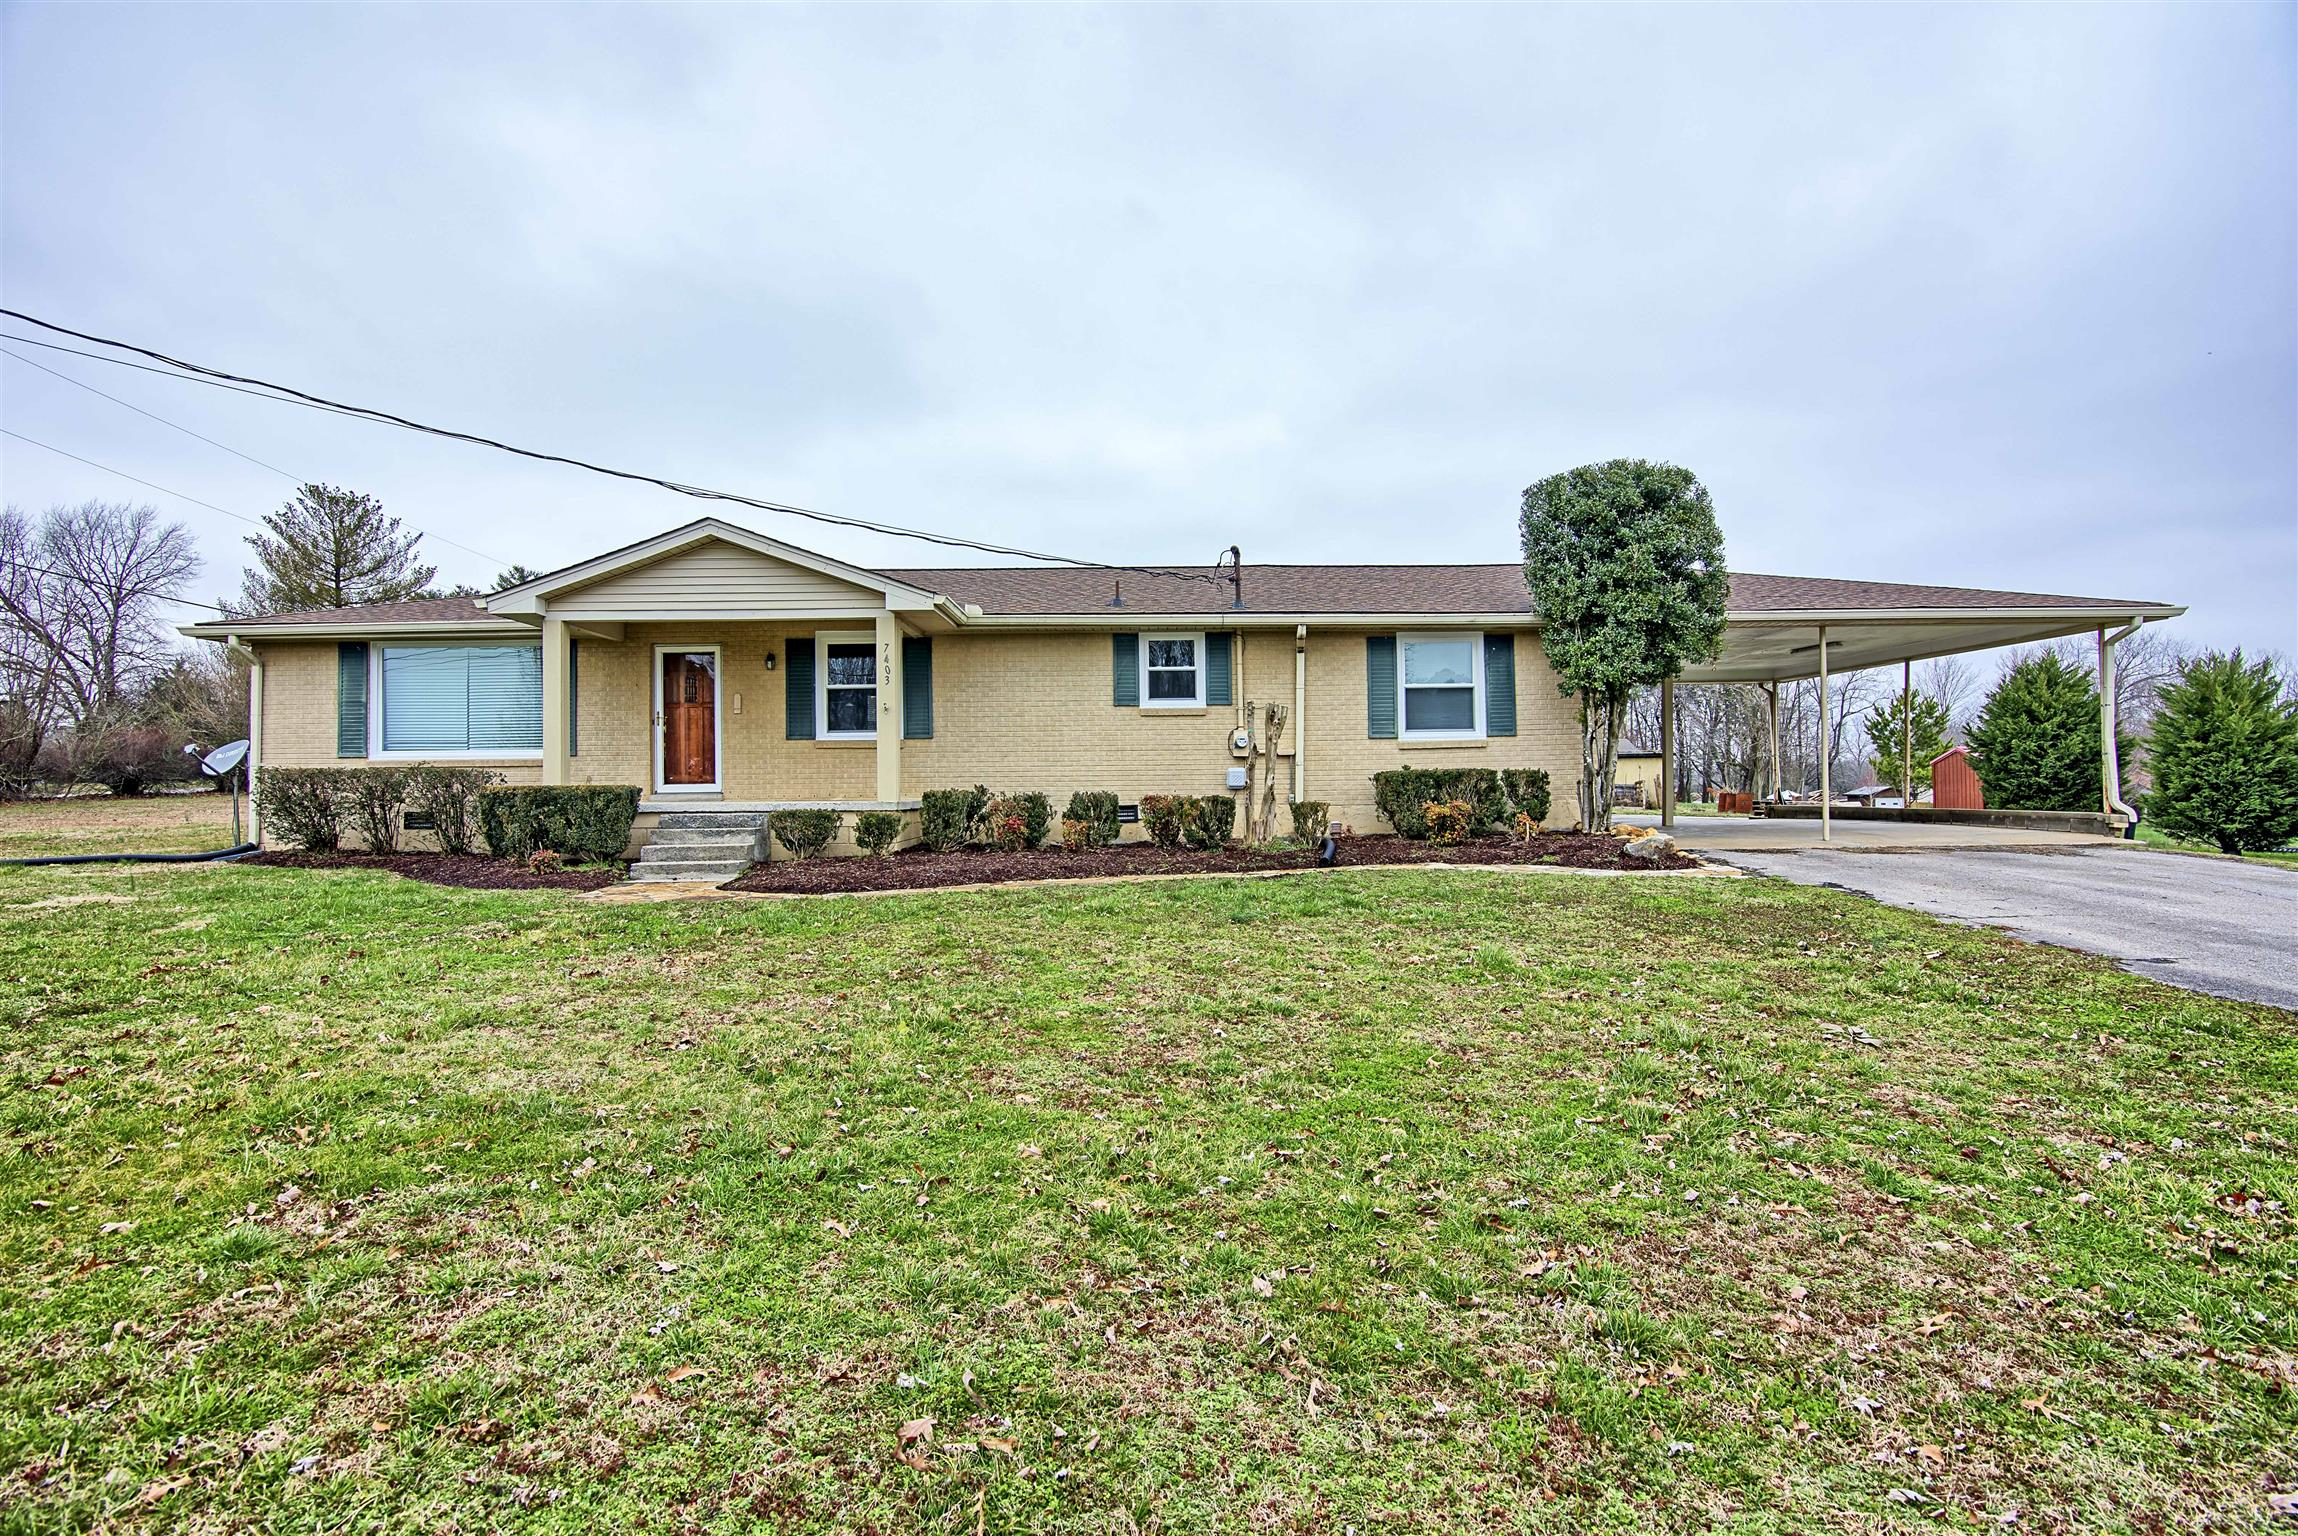 7403 Old Nashville Rd, Fairview in Williamson County County, TN 37062 Home for Sale